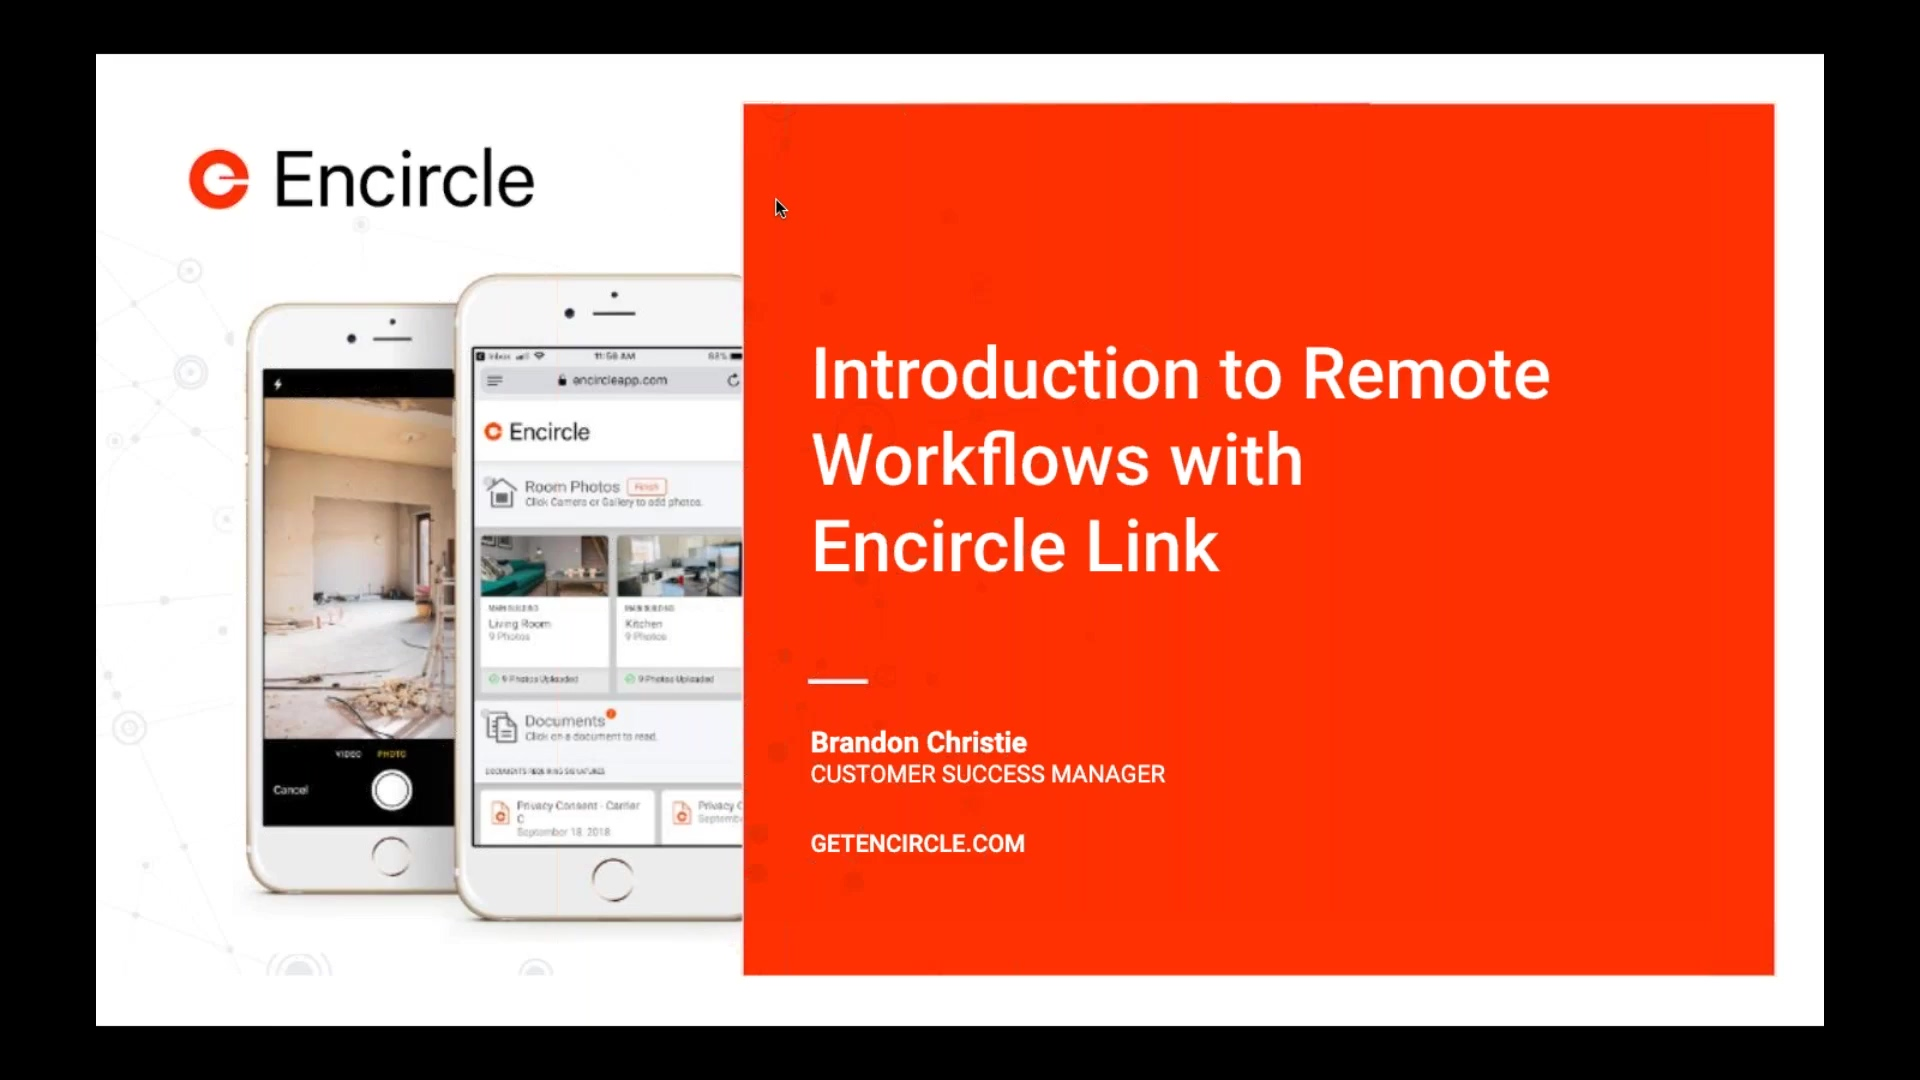 Introduction to Remote Workflows with Policyholder Link (1)